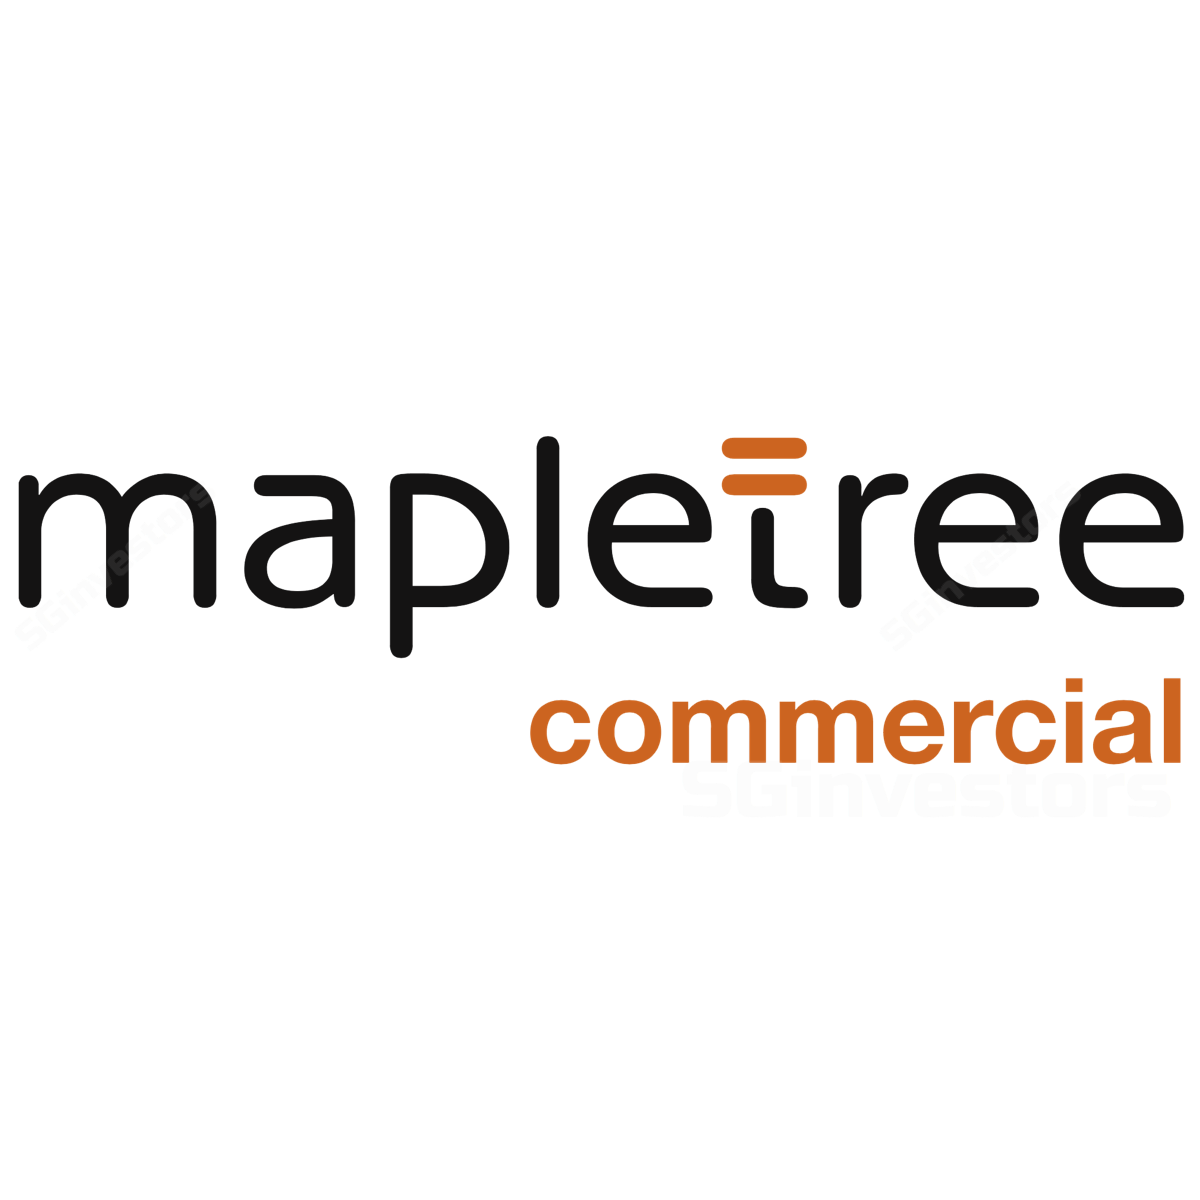 Mapletree Commercial Trust - DBS Vickers 2017-07-28: VivoCity Still One-of-a-kind